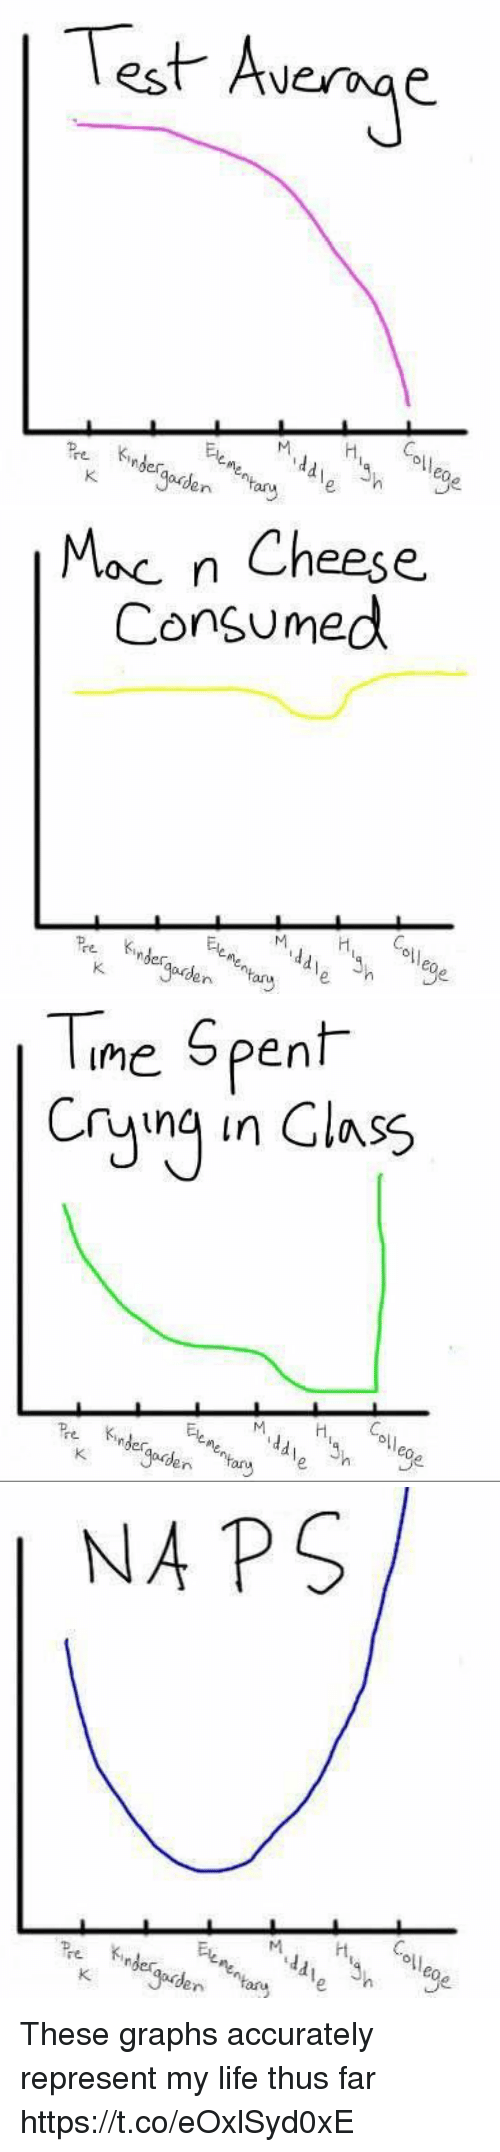 ols: Test Avege  oll  eo  n ary   Moc n Cheese.  Consumed  이  noes  Jaudary   Tne Spent  Cryng in Class  Ele  ol  re inder  eo  ern   NA PS  HC  oll These graphs accurately represent my life thus far https://t.co/eOxlSyd0xE